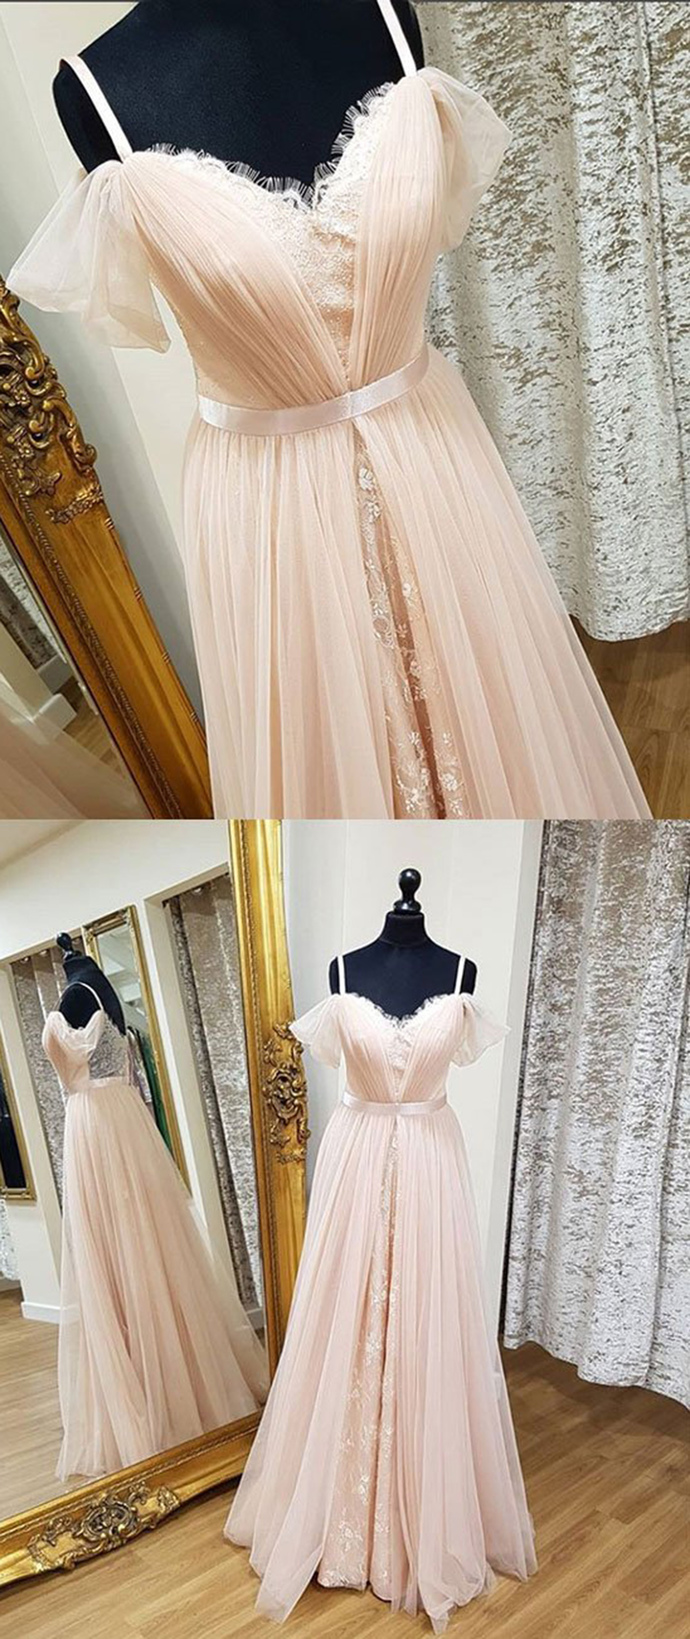 Sweetheart blush pink tulle long customize prom dress, long lace bridesmaid